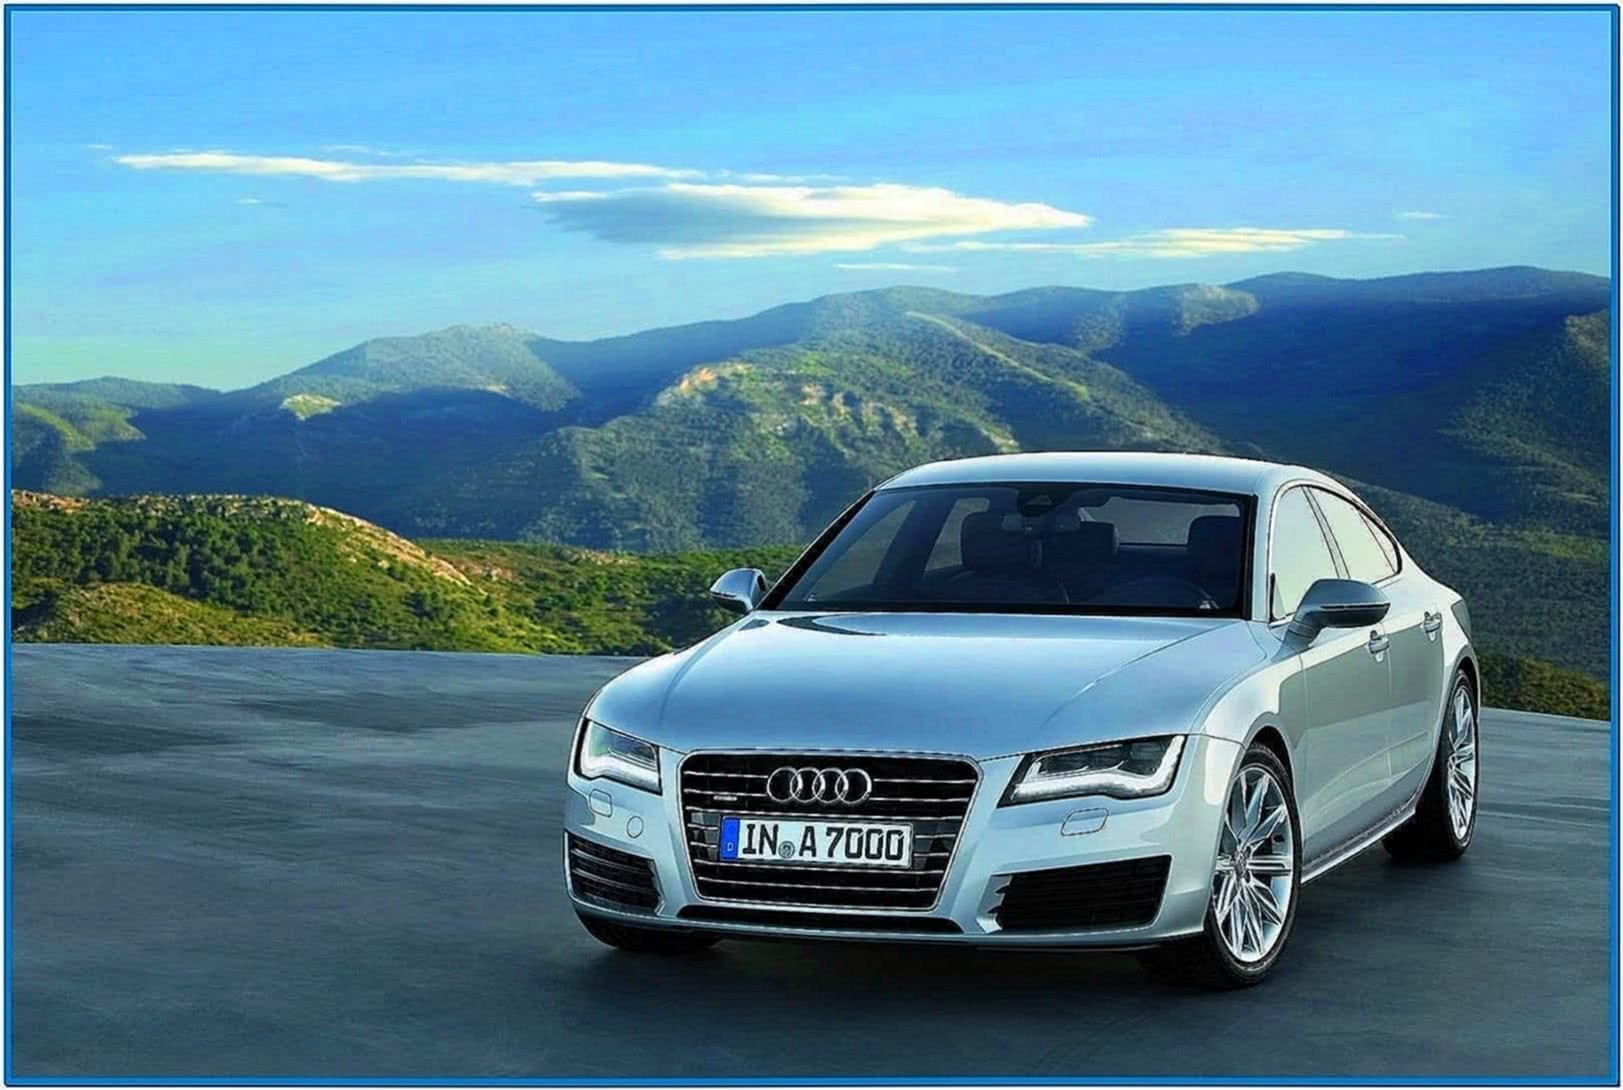 Screensaver Audi A7